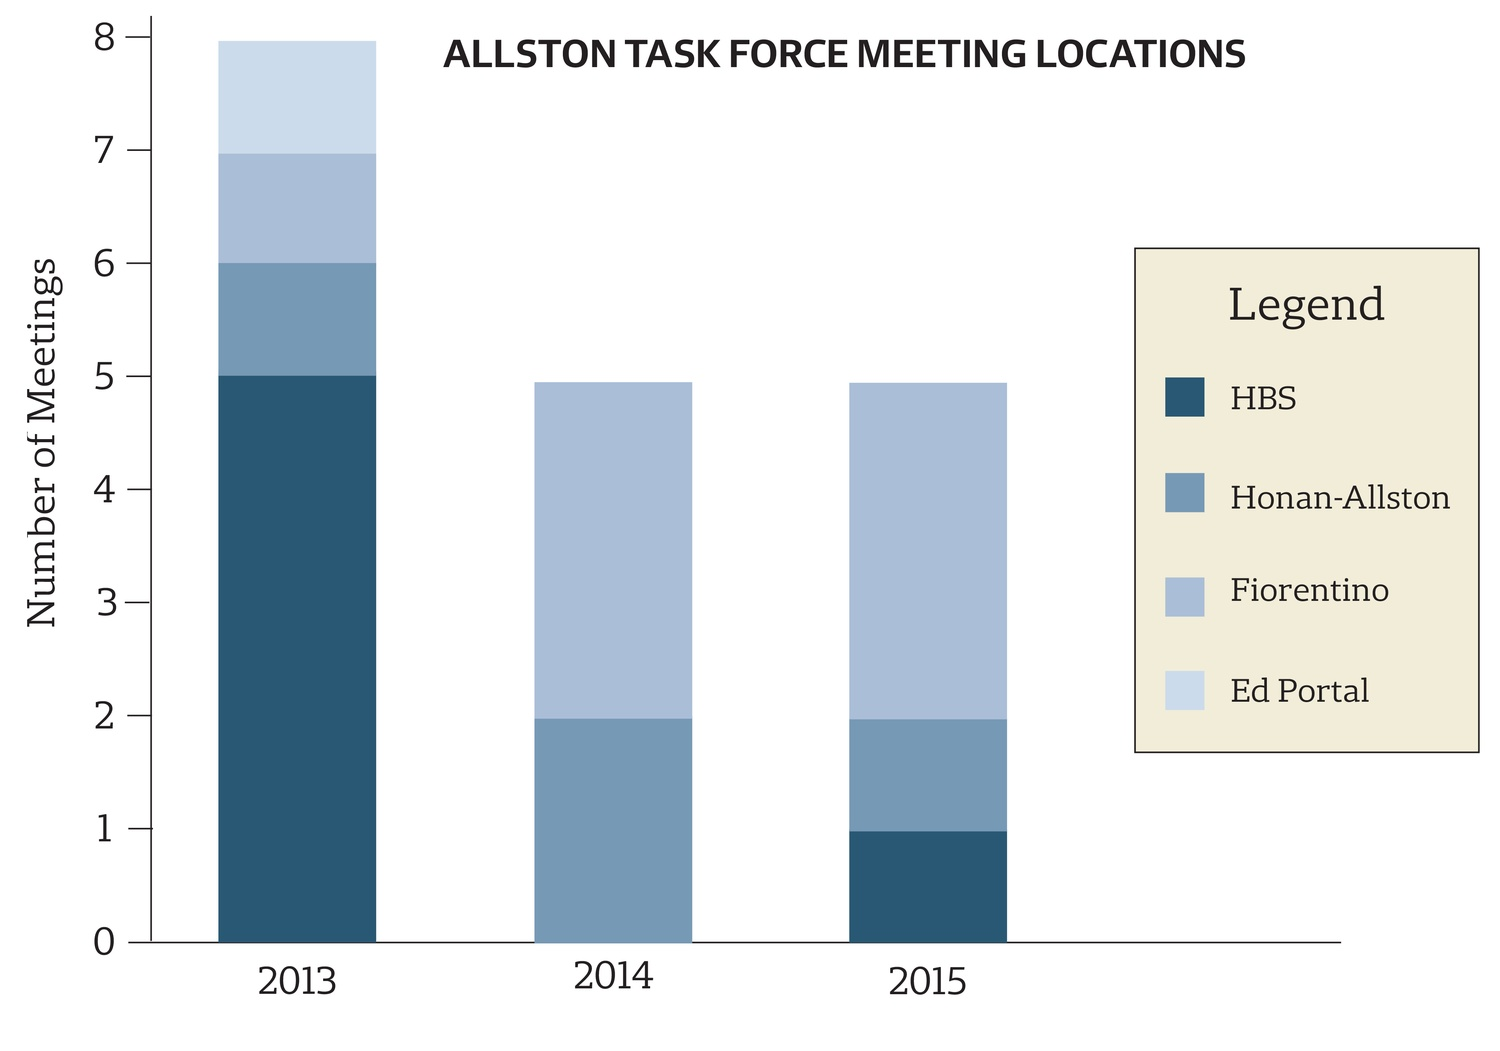 Allston Task Force Meeting Locations Graph